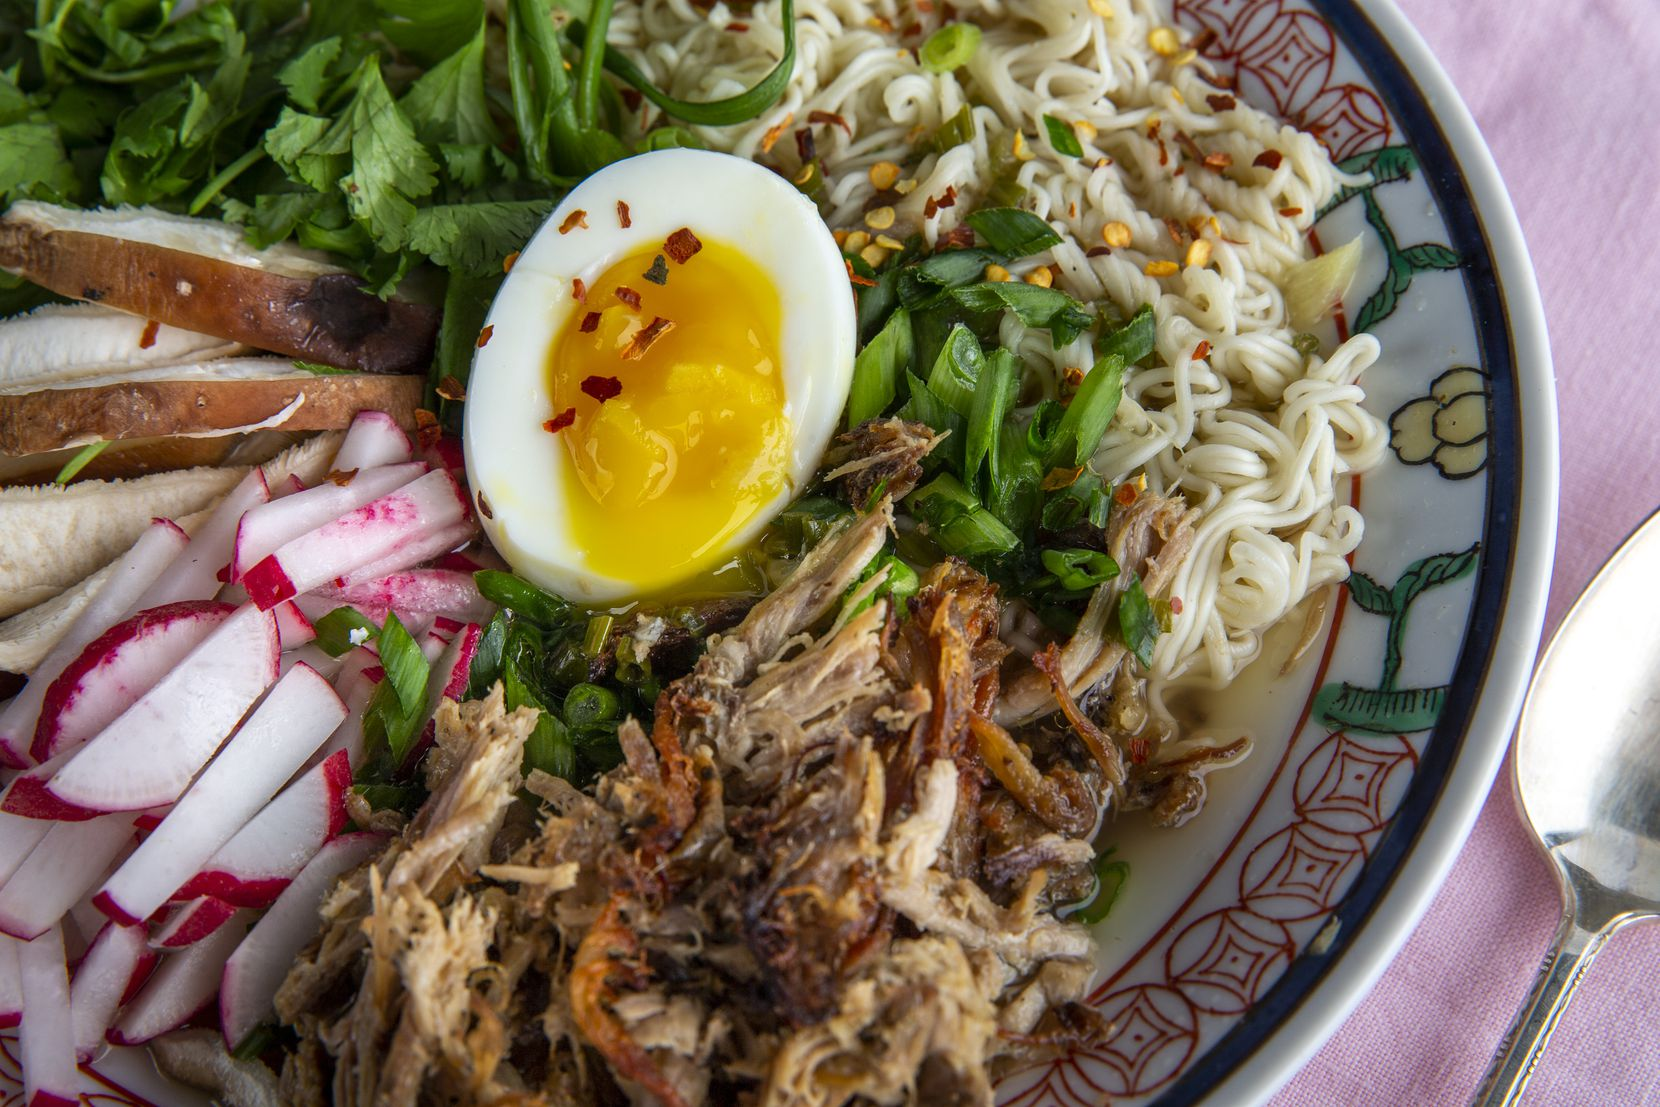 Spicy Pork Ramen is made with Pineapple Pork from the Instant Pot.